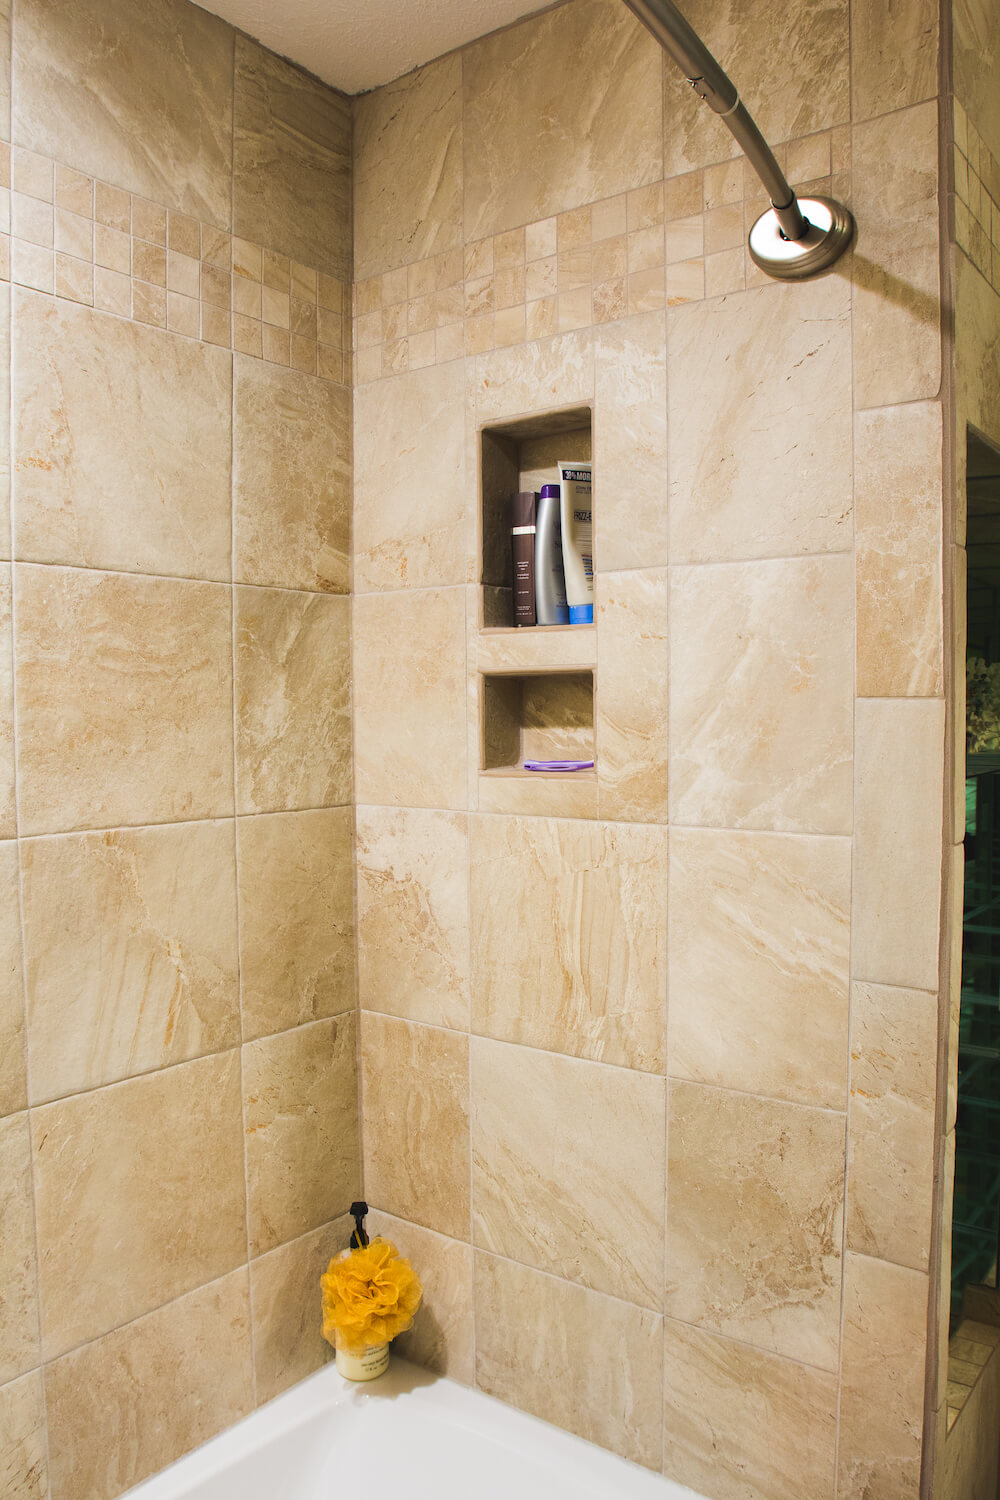 cost of bathroom tile 2018 regrouting shower tile cost regrout shower price 17968